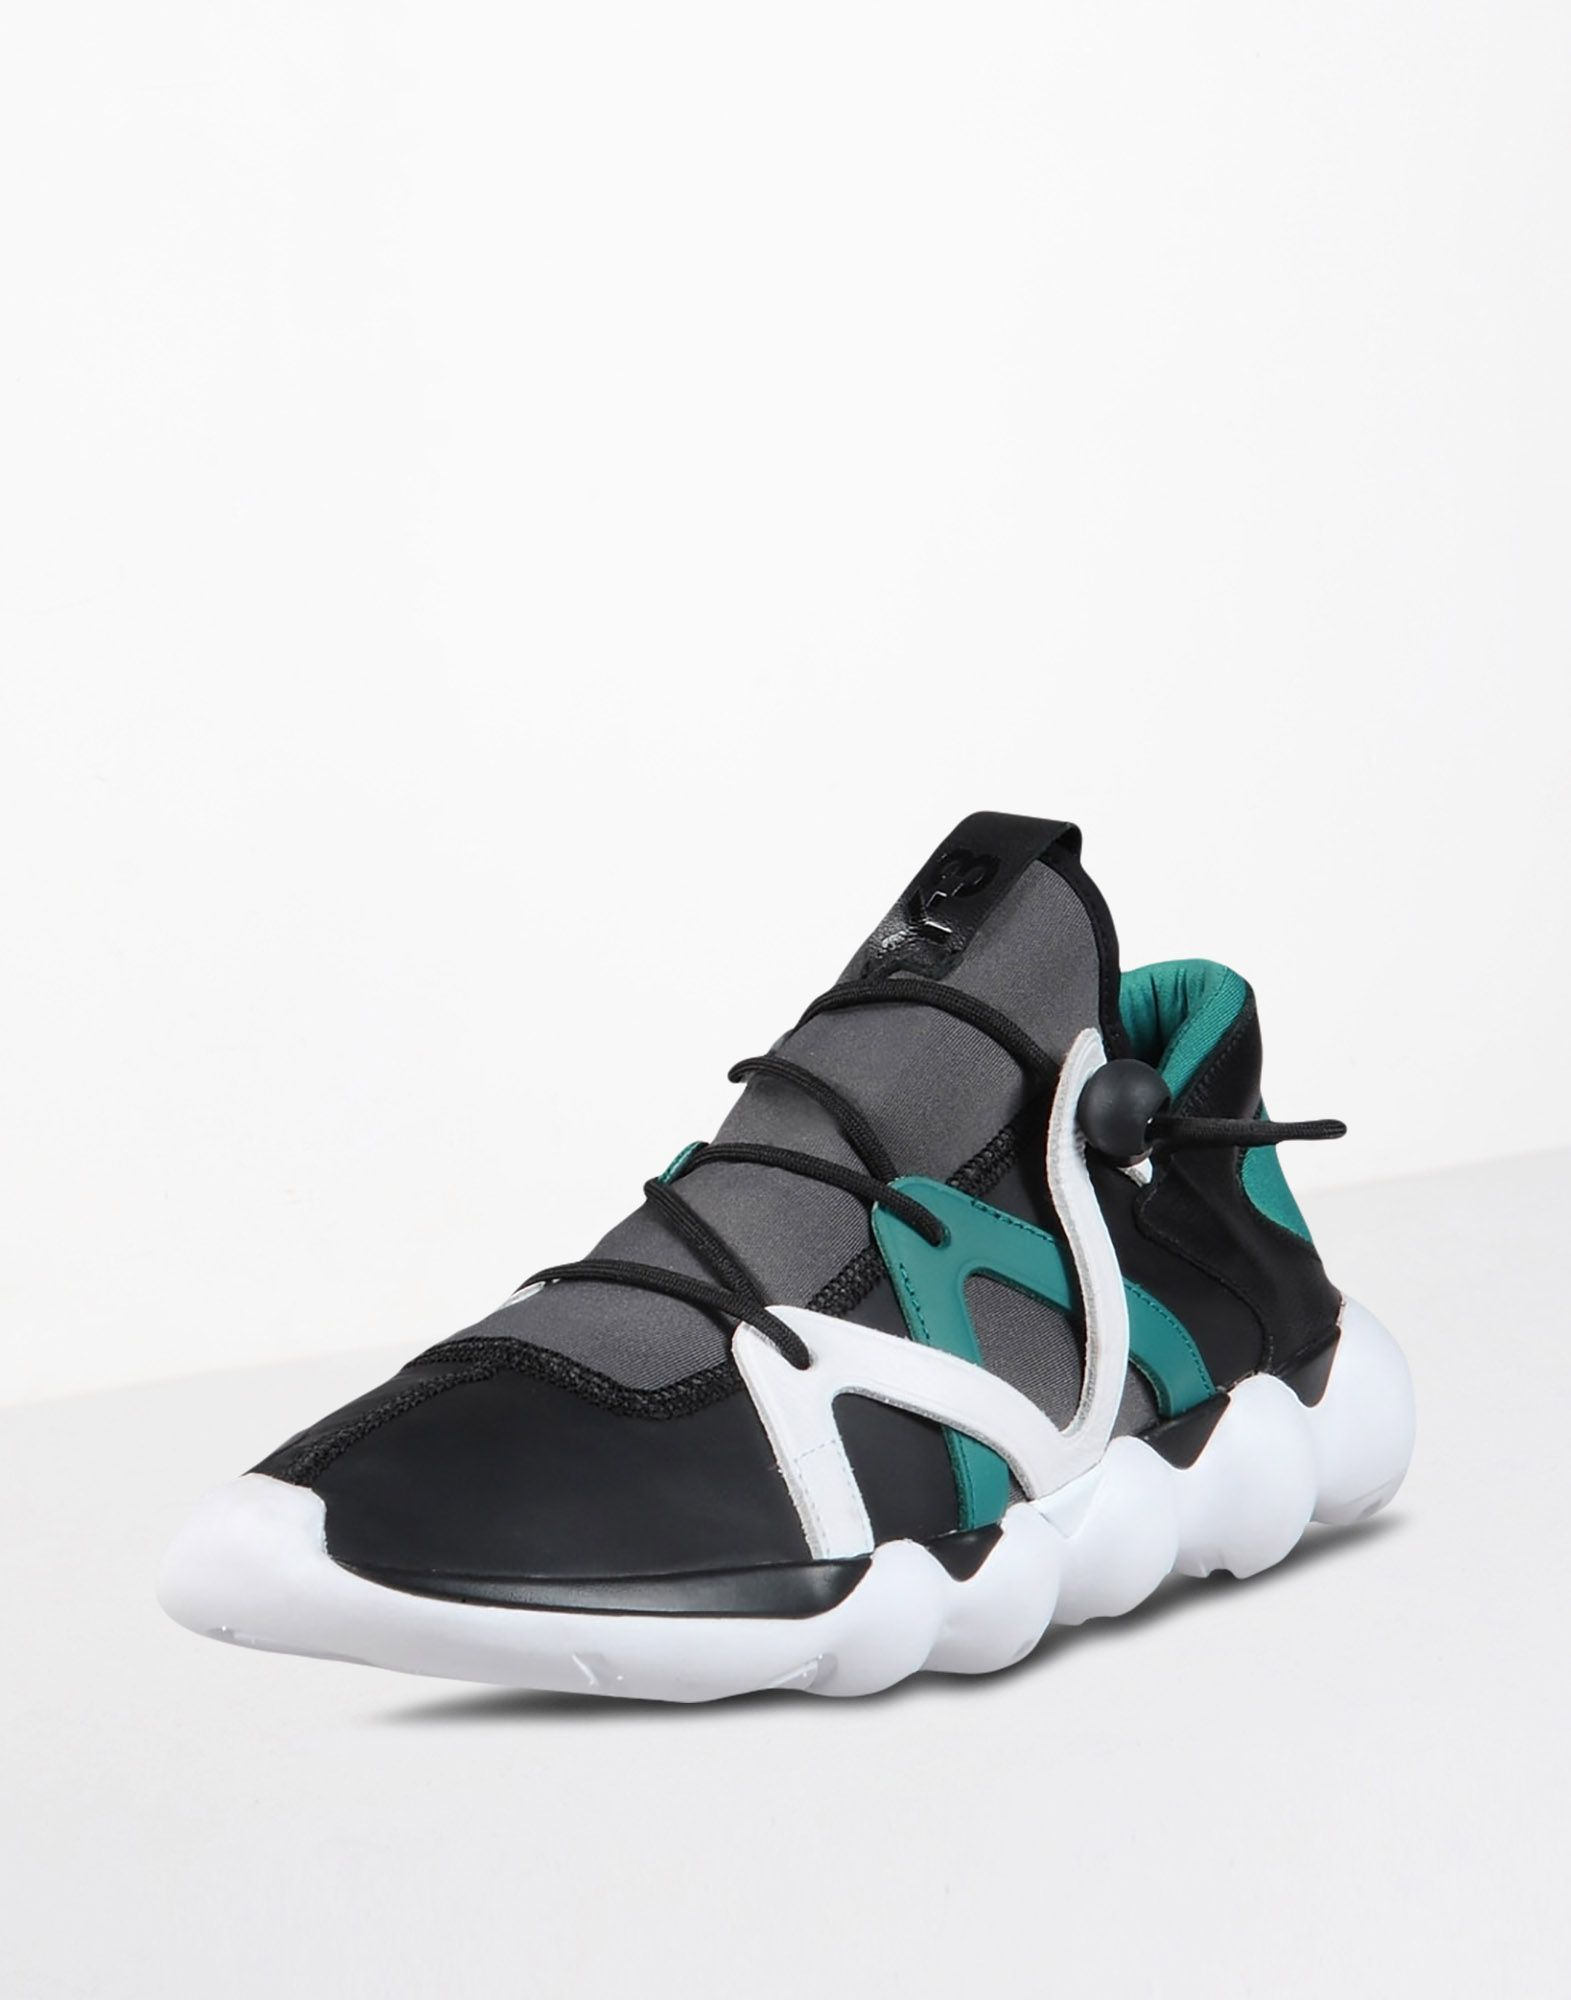 Check out the Y 3 KYUJO LOW Sneakers for Men and order today on the  official Adidas online store.